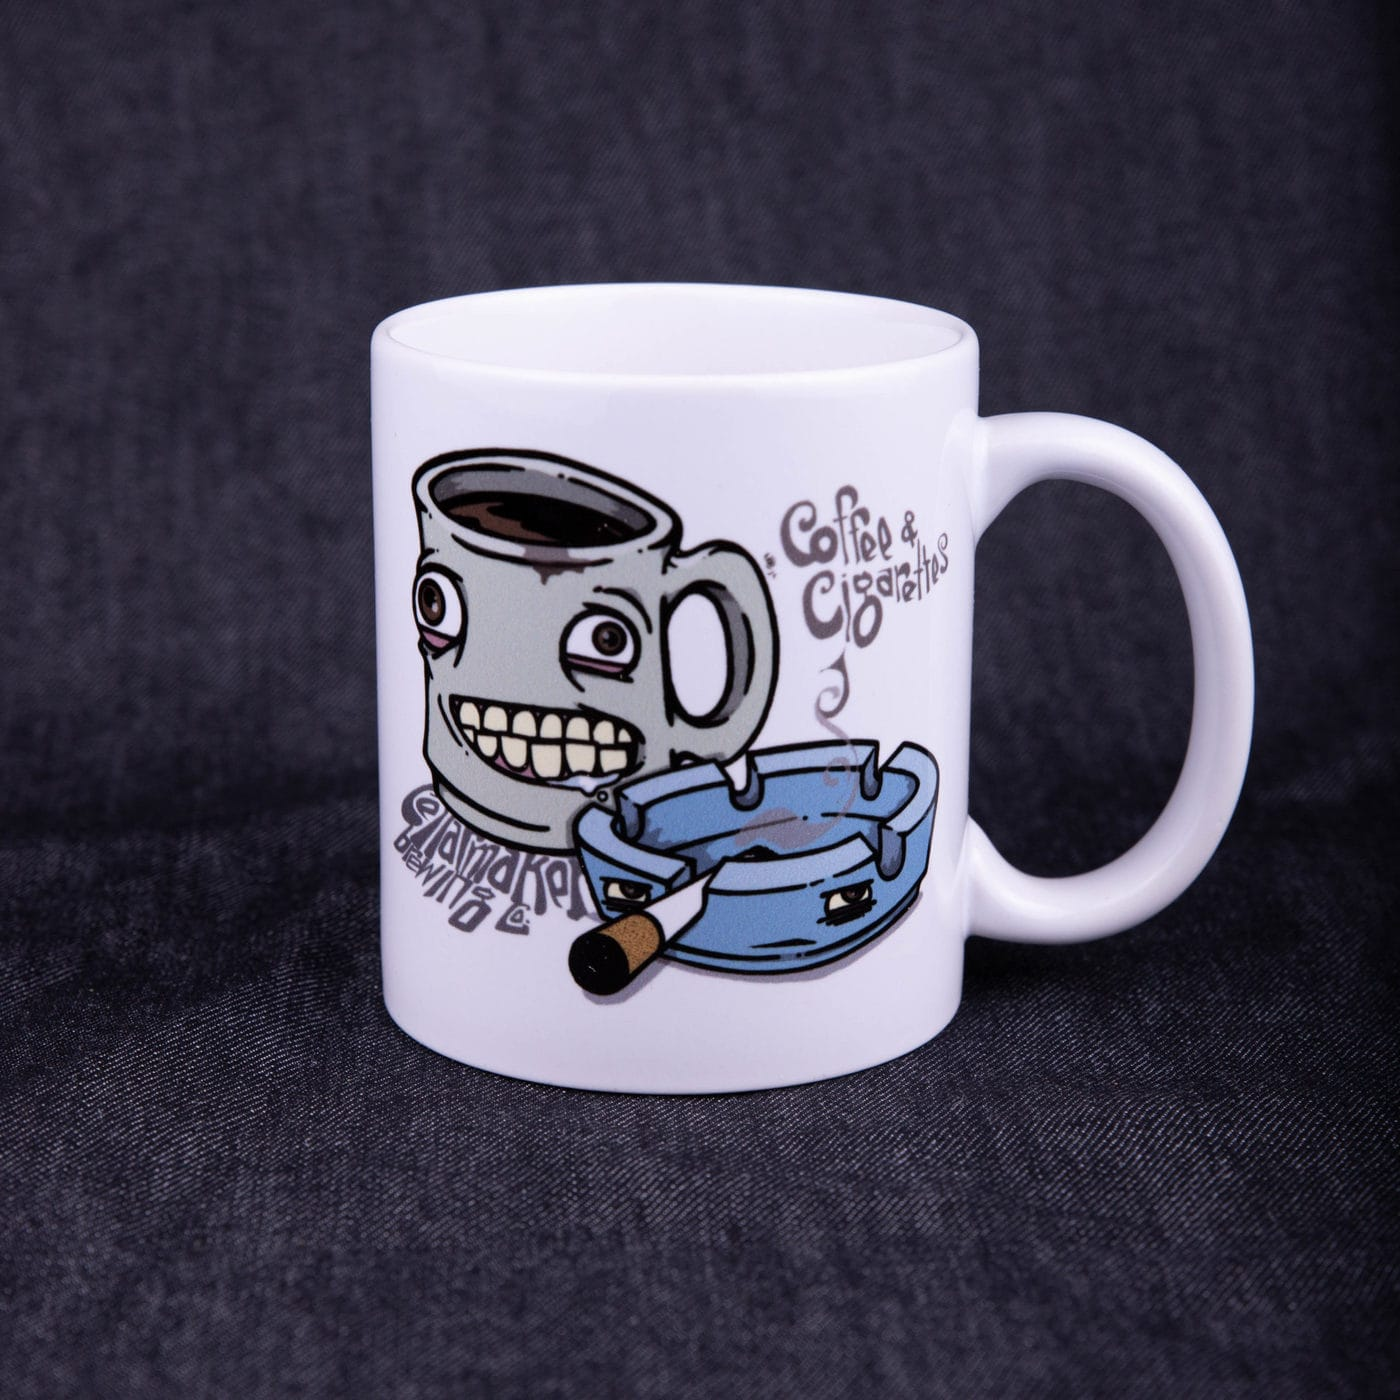 Coffee + Cigarettes Mug